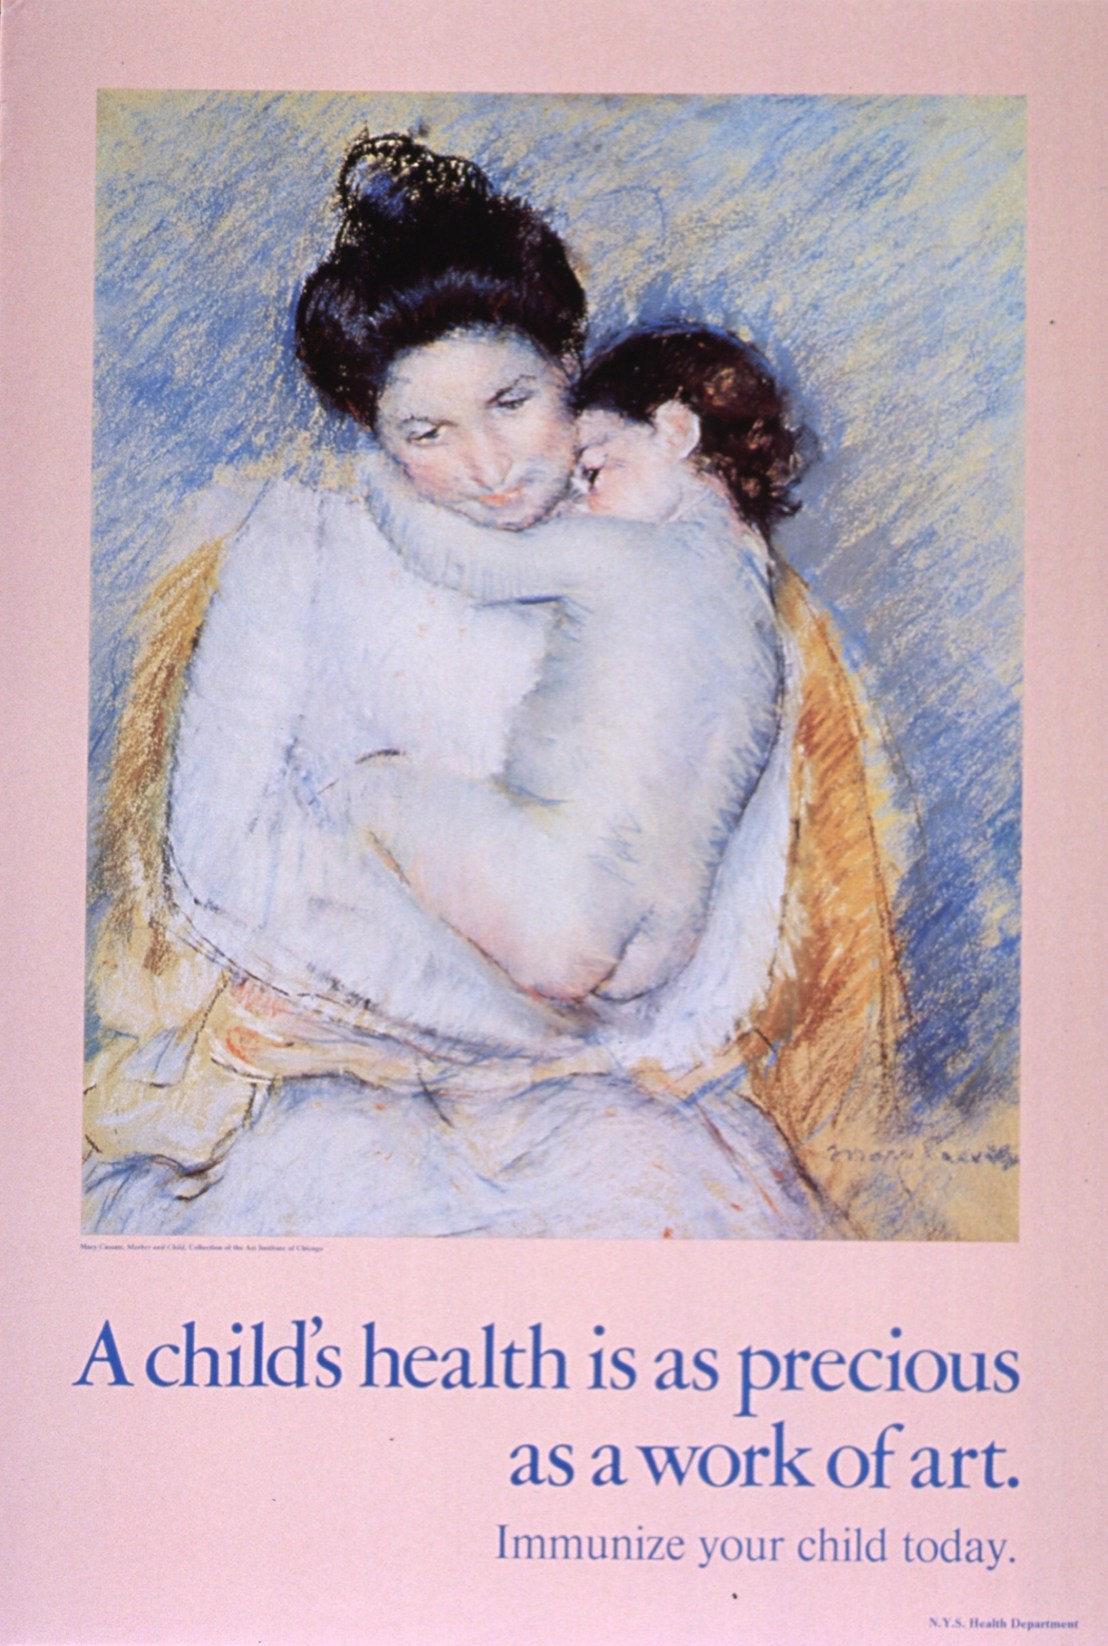 A child's health is as precious as a work of art: immunize your child today